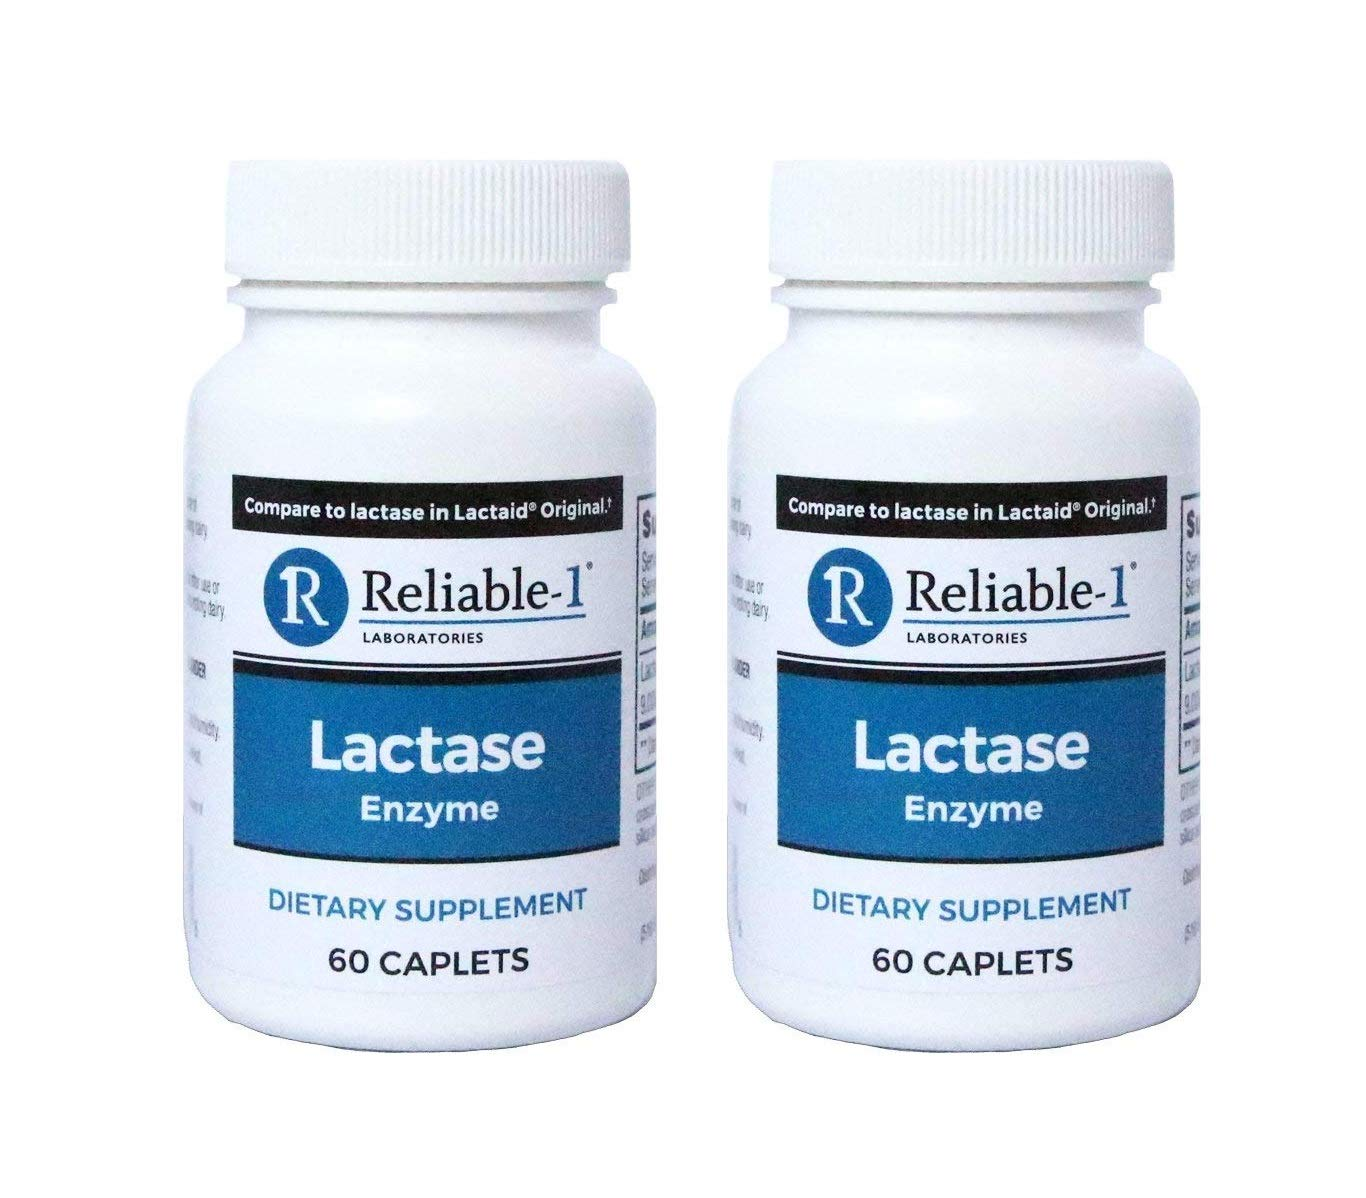 RELIABLE 1 LABORATORIES Lactase Enzyme Dietary Supplement (120 Caplets) (2-Pack) - Helps to Prevent Gas, Bloating and Diarrhea from Milk Based Products by Reliable-1 Laboratories